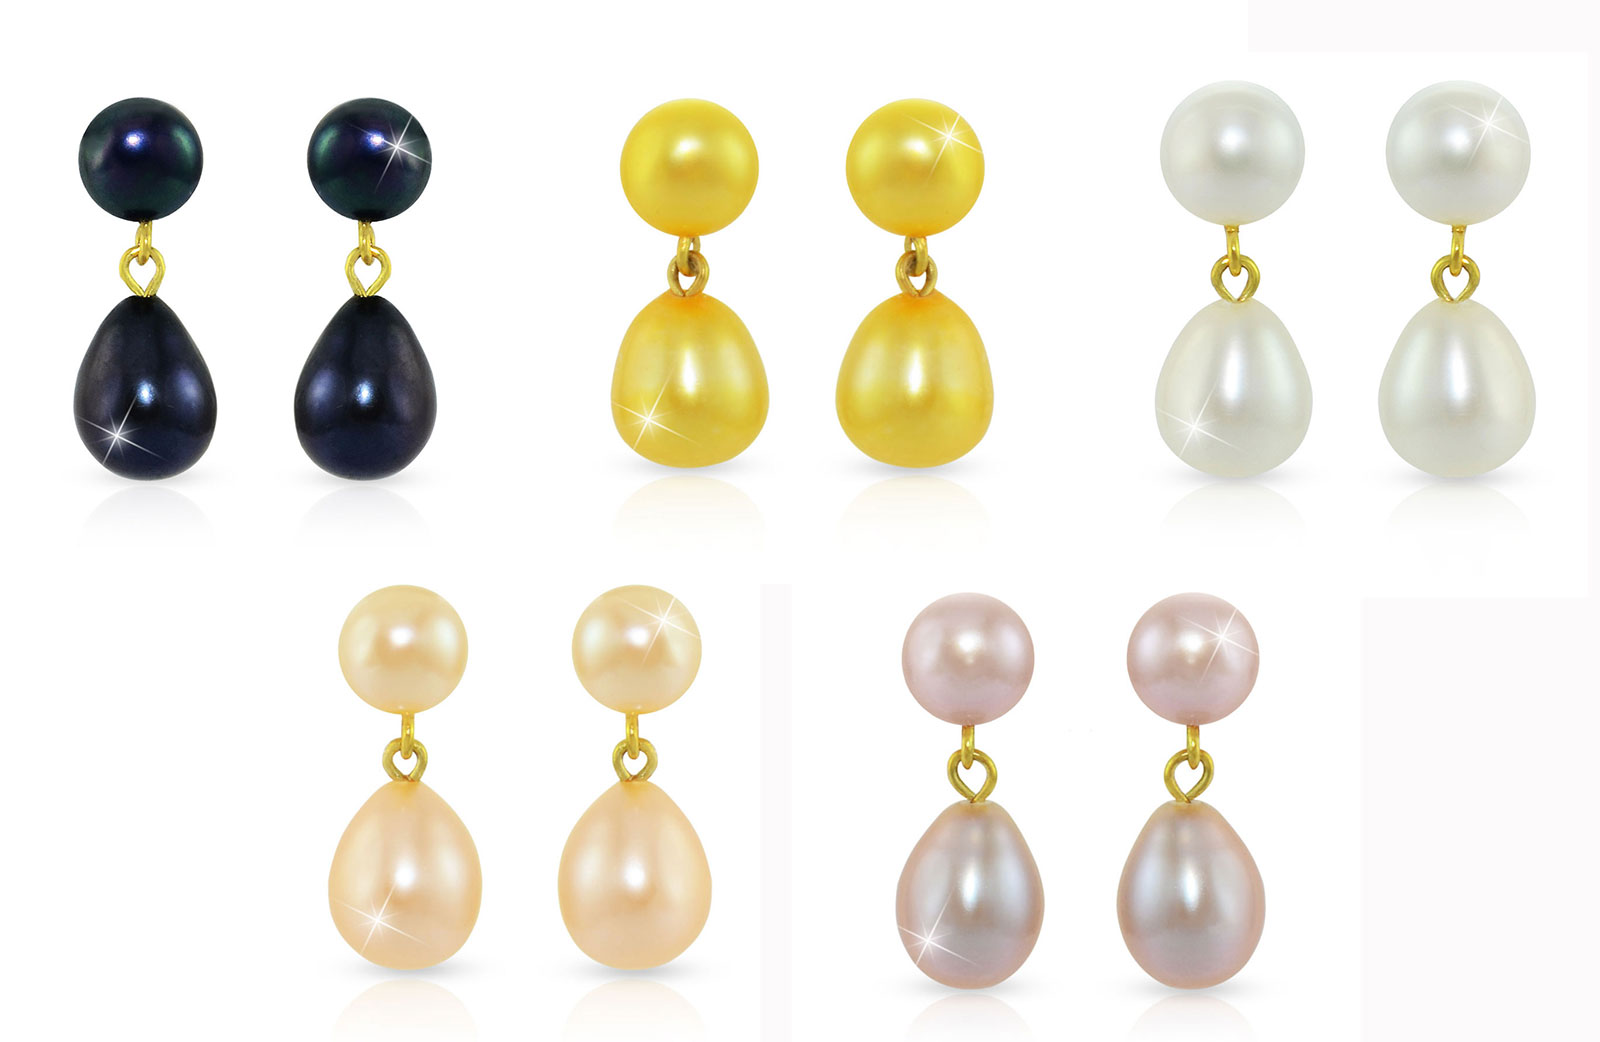 Vera Perla 18K Gold 7mm Genuine Pearls Drop and Dangle 5 Pairs Earrings